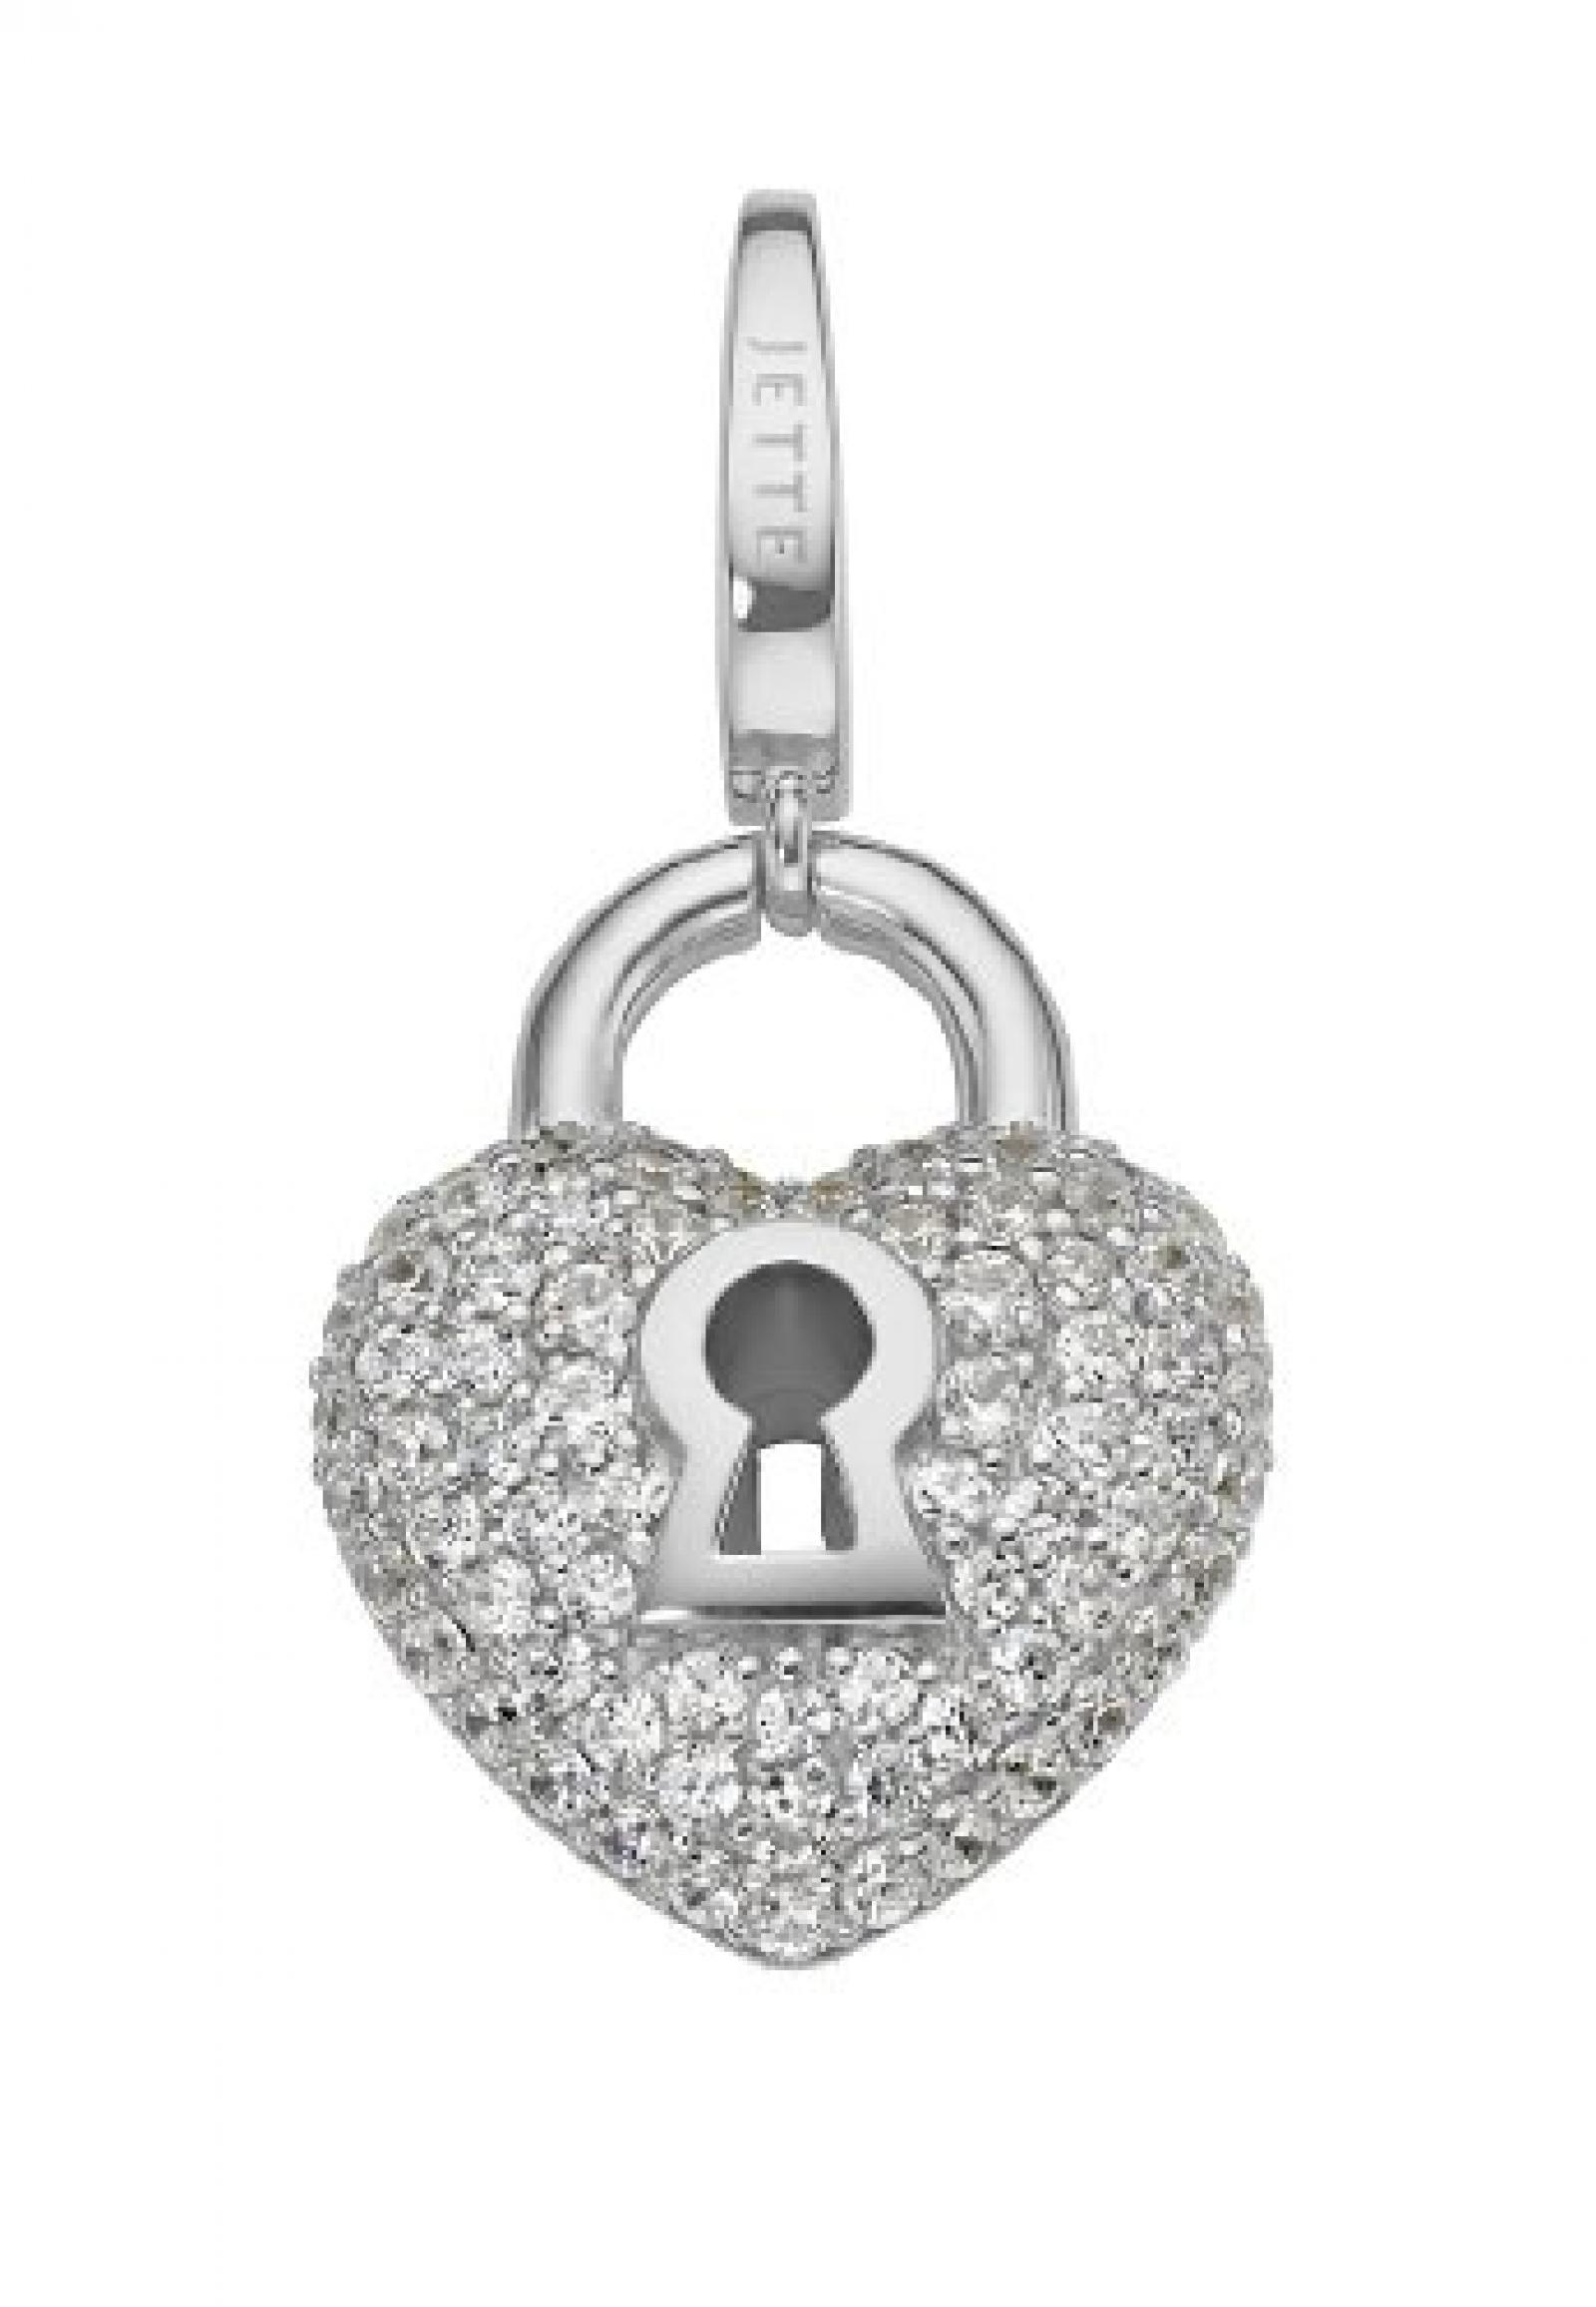 JETTE Charms Damen-Charm CHARM 925er Silber 75 Zirkonia One Size, silber